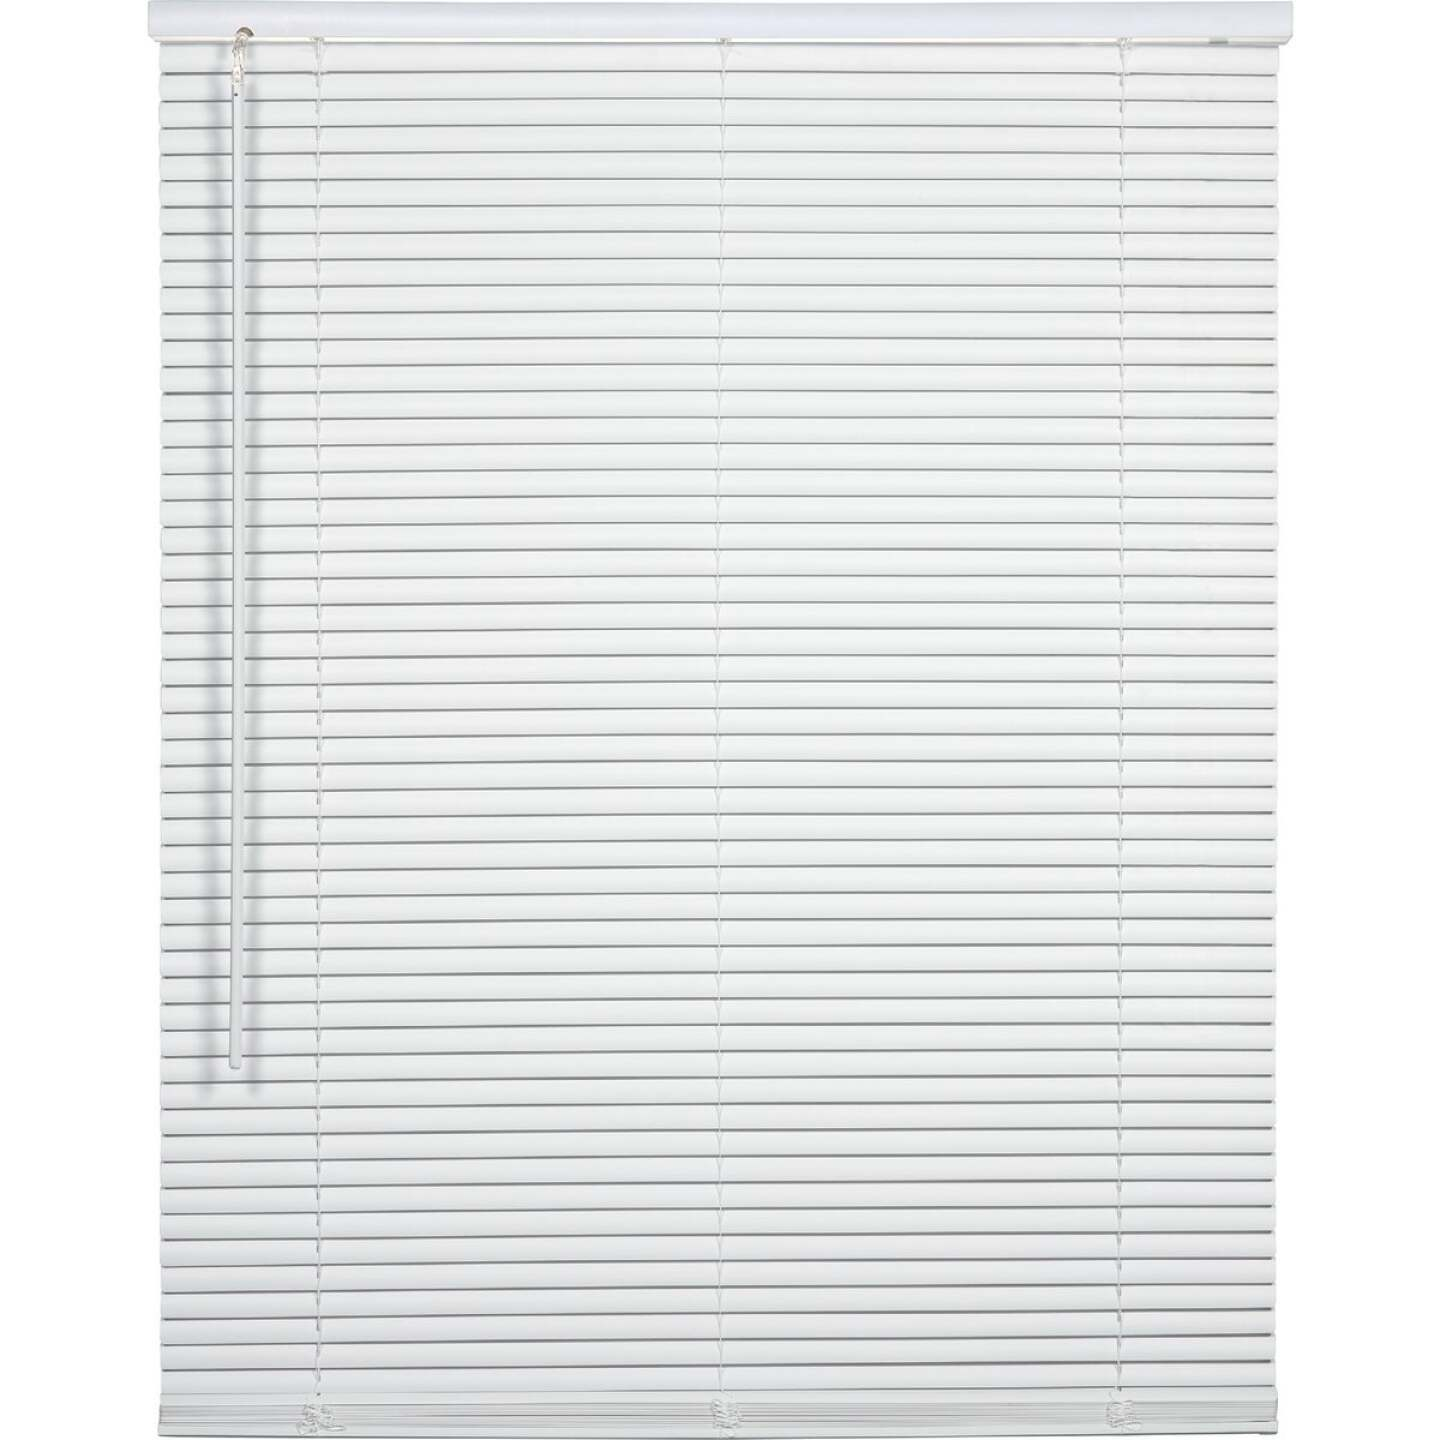 Home Impressions 17 In. x 64 In. x 1 In. White Vinyl Light Filtering Cordless Mini Blind Image 1